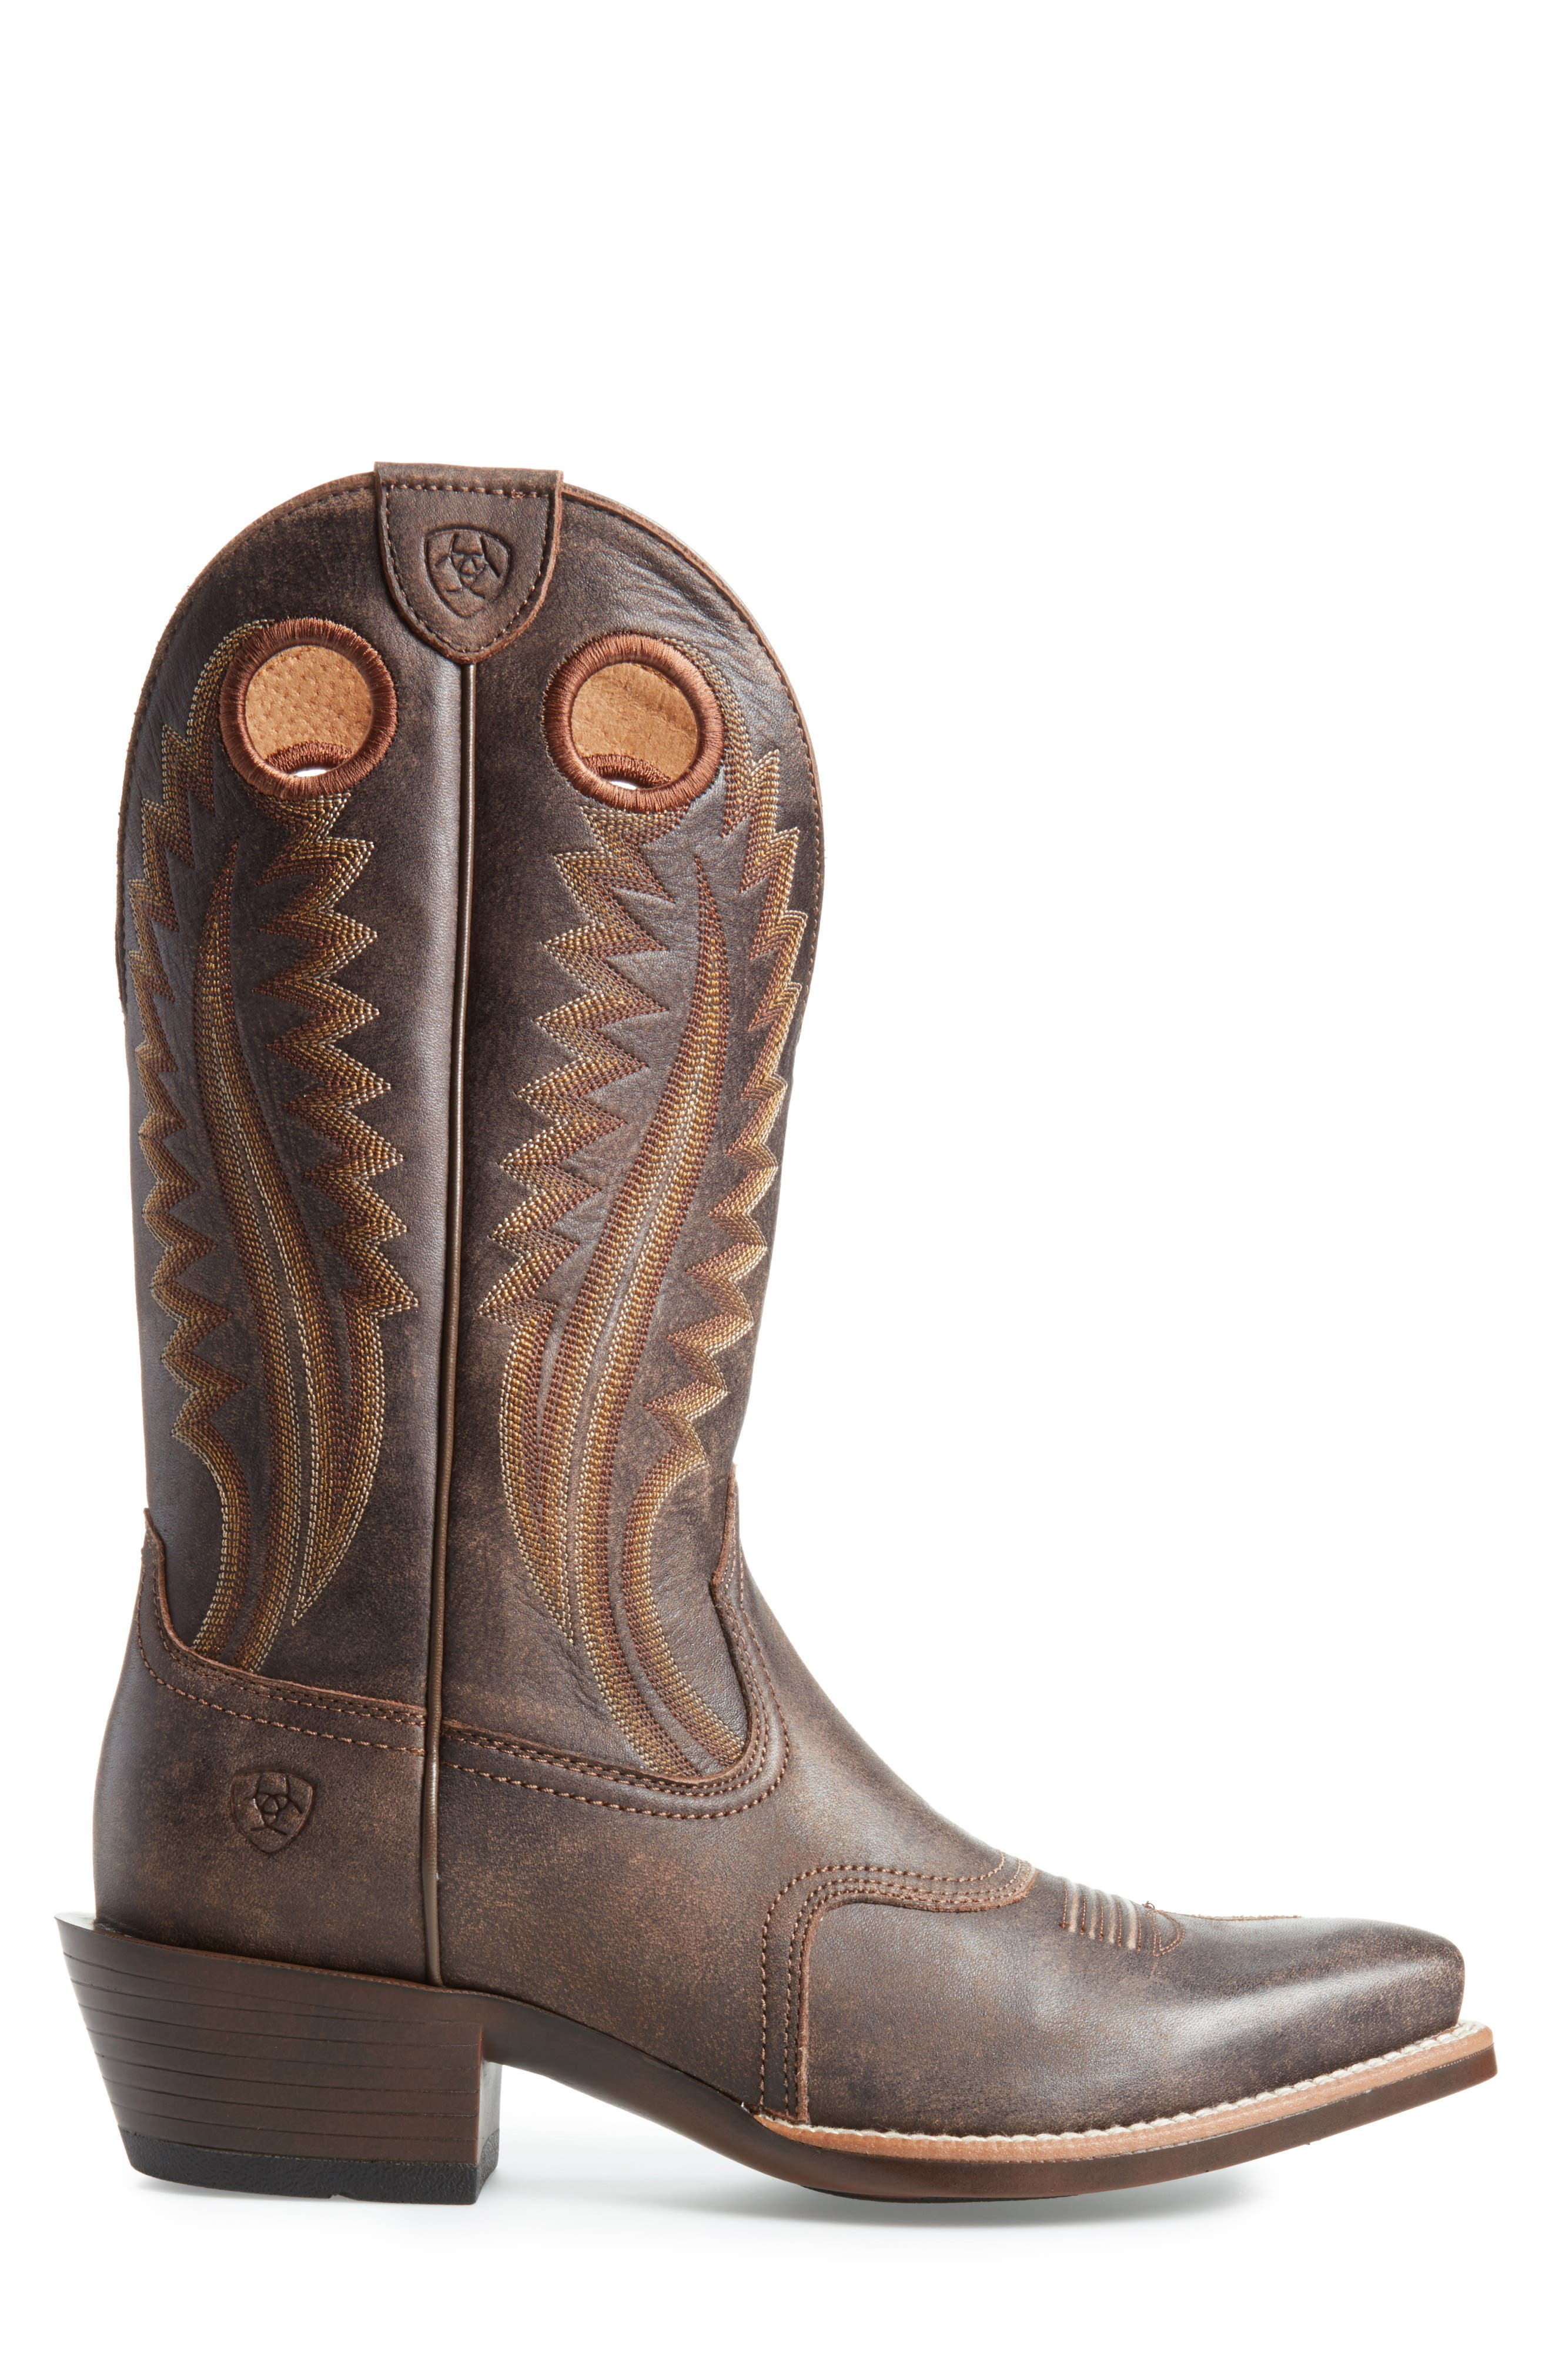 High Desert Cowboy Boot,                             Alternate thumbnail 3, color,                             Tack Chocolate Leather